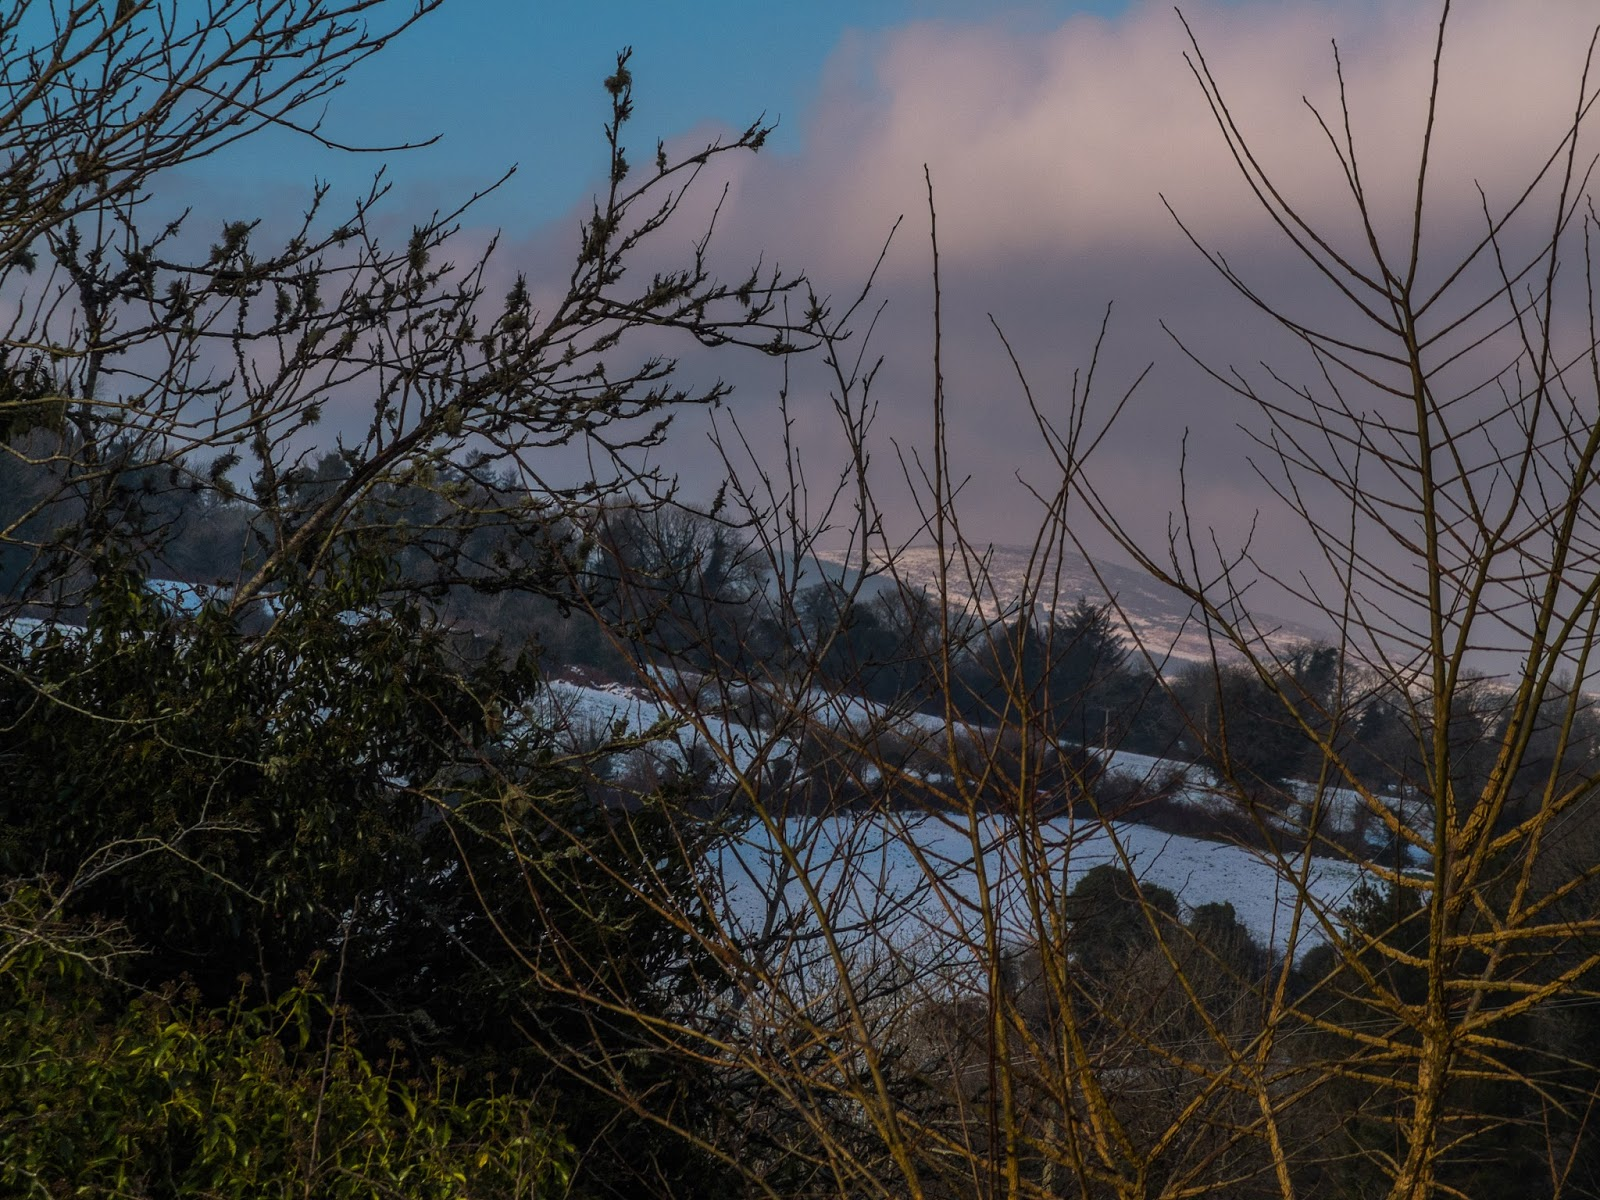 View of a snow covered mountain through branches at sunset.